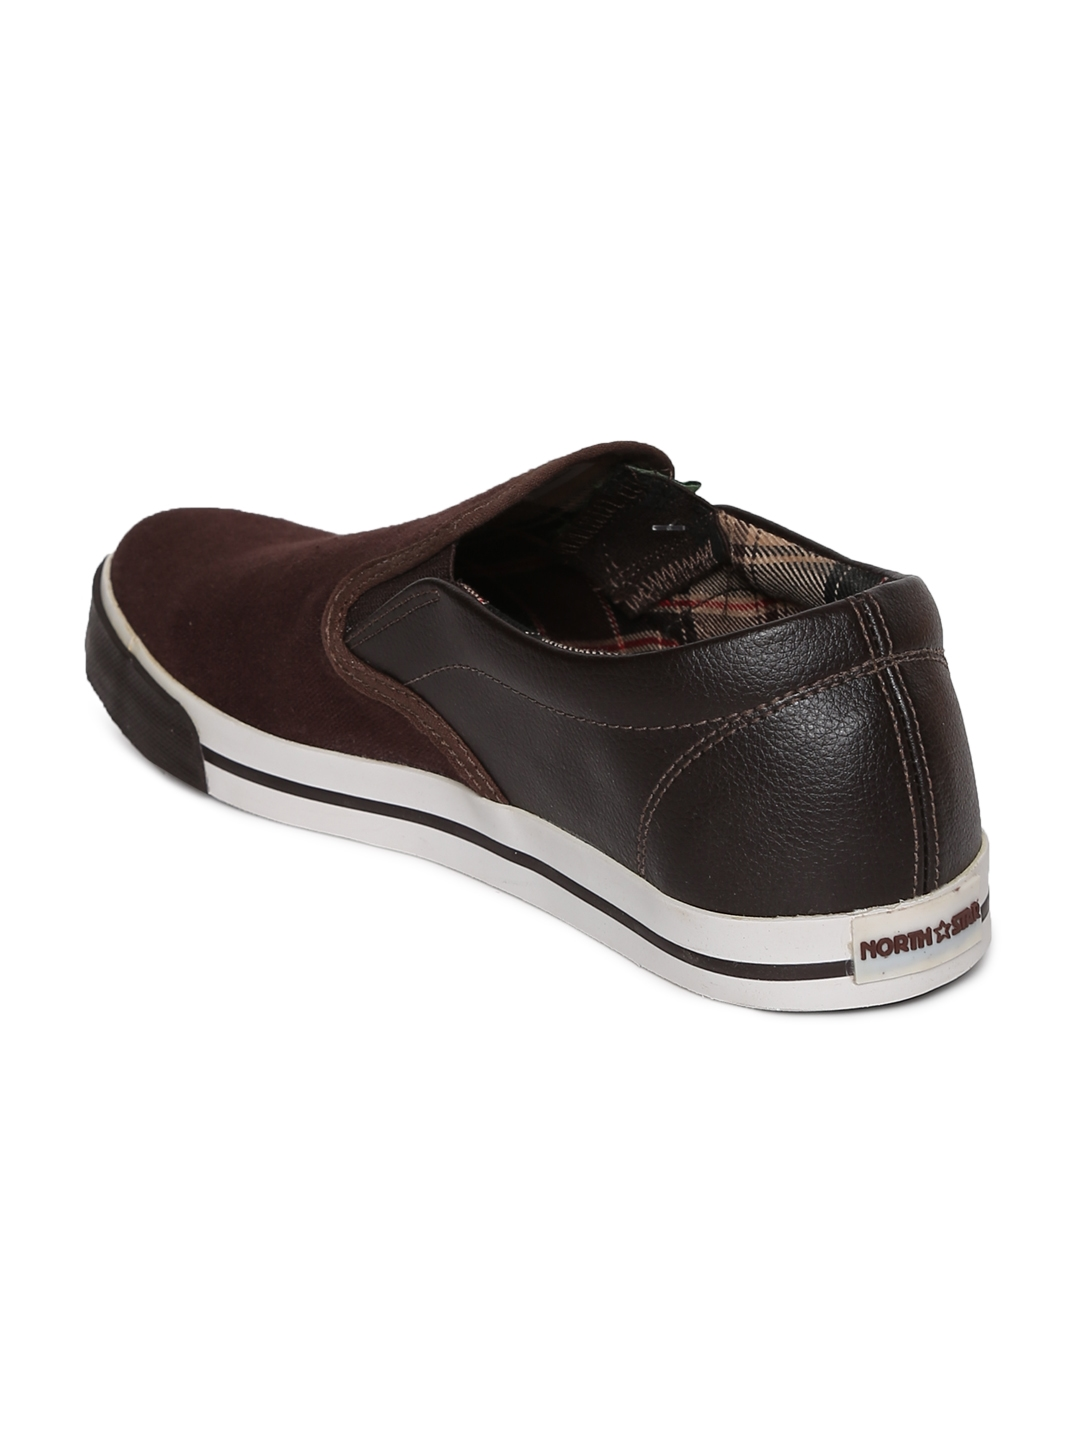 11d081a357c8c0 Buy North Star Men Brown Slip On Sneakers - Casual Shoes for Men ...